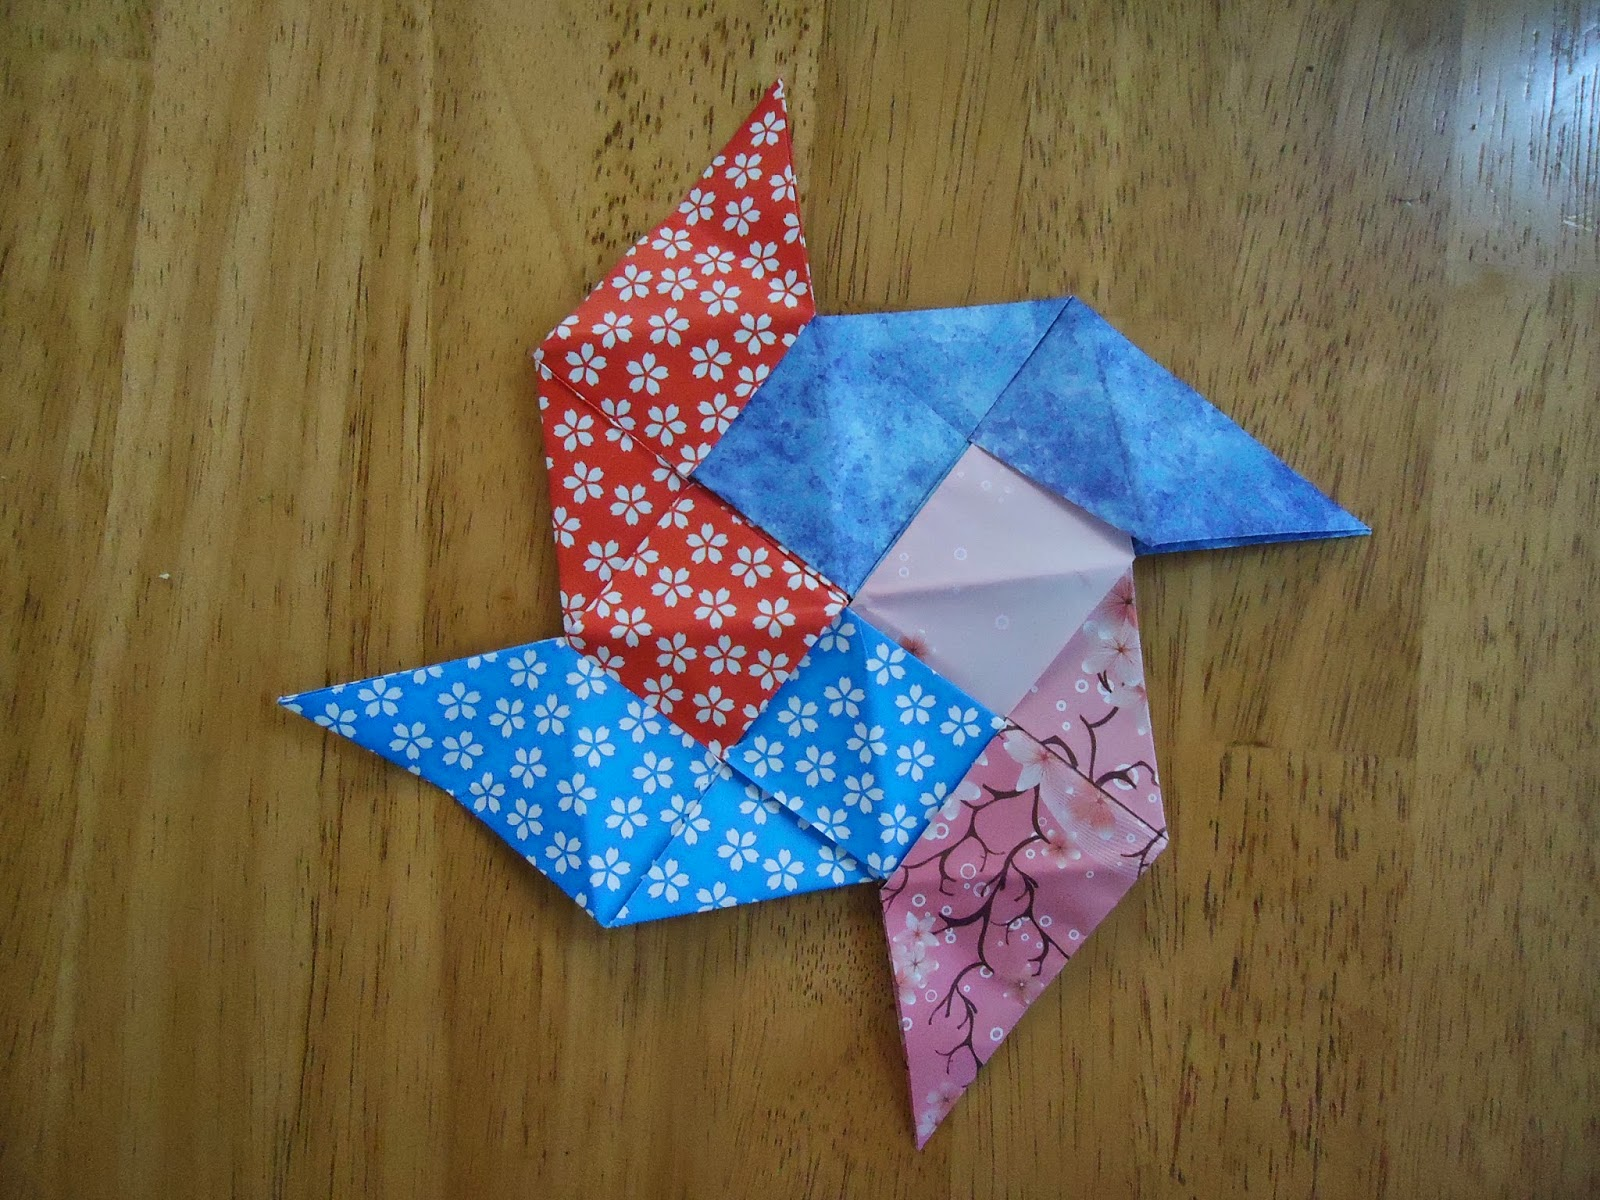 origami projects Fold classics such as origami crane origami instructions for years have looked for projects to do that were advanced novice and had trouble with.